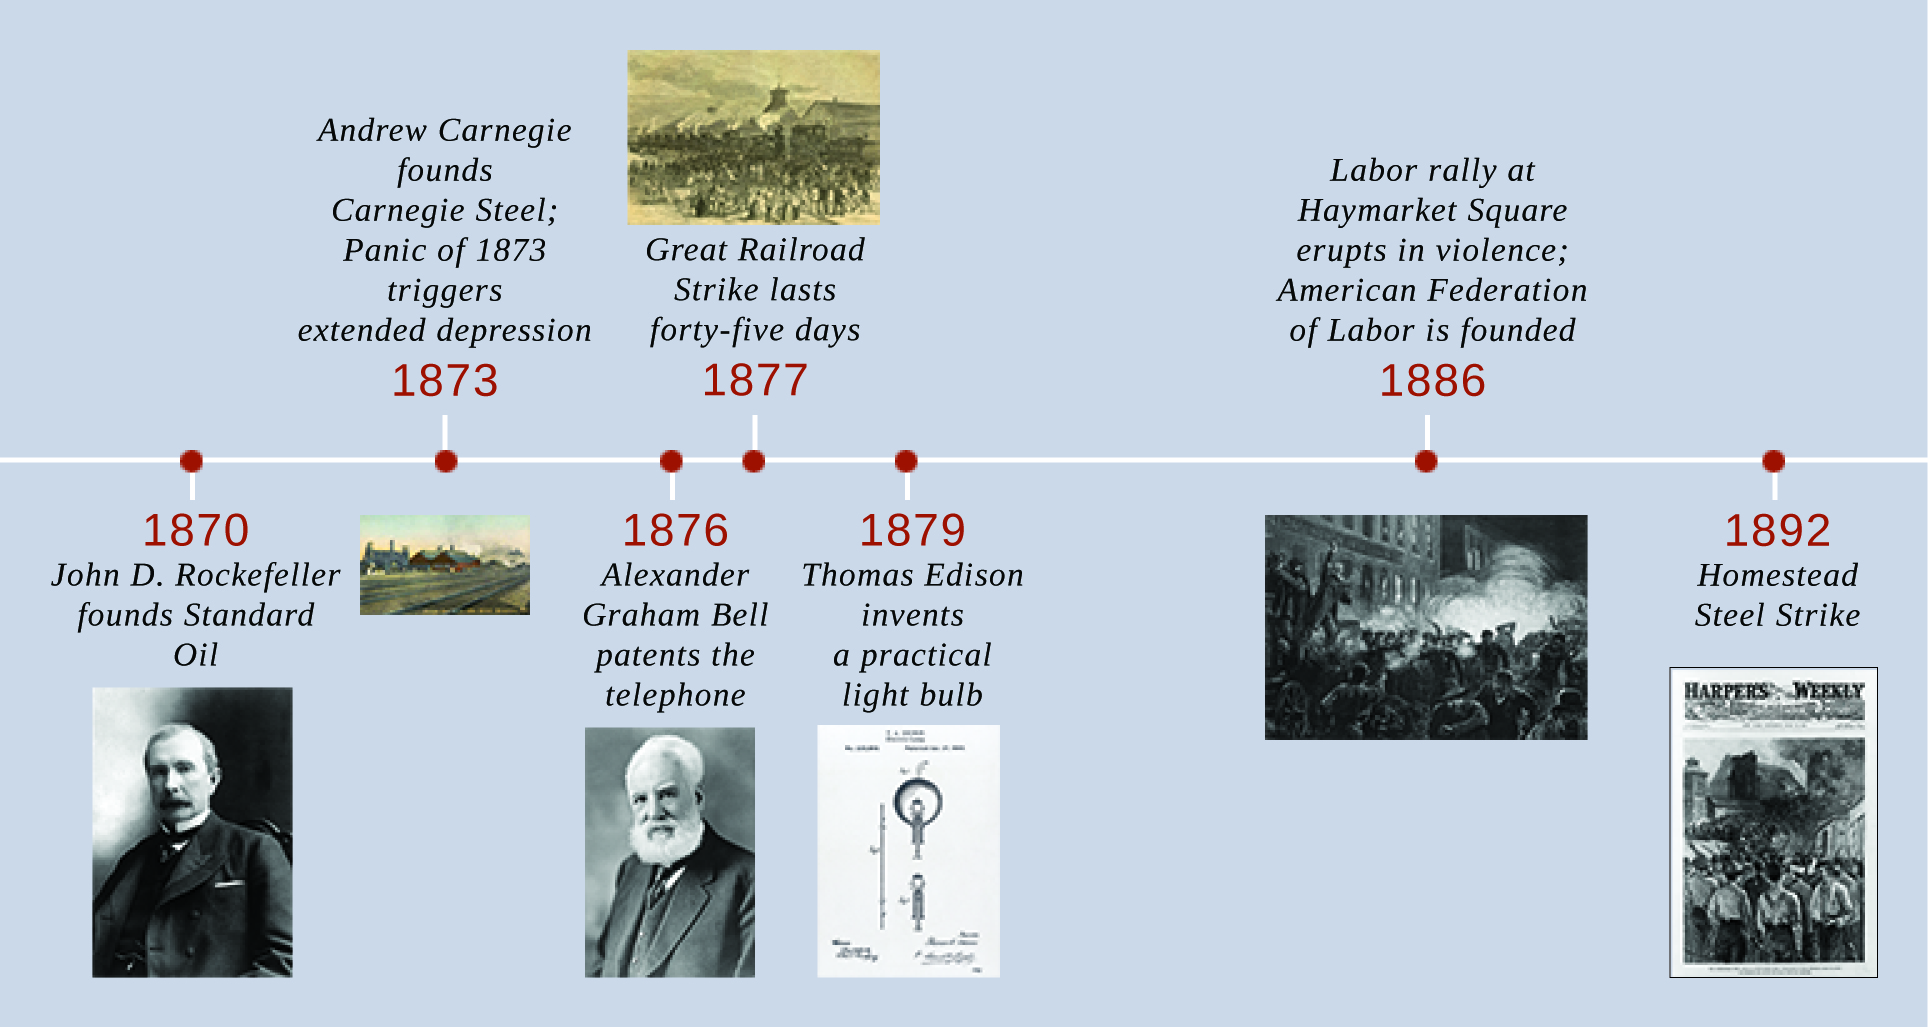 A timeline shows important events of the era. In 1870, John D. Rockefeller founds Standard Oil; a photograph of Rockefeller is shown. In 1873, Andrew Carnegie founds Carnegie Steel, and the Panic of 1873 triggers extended depression; a drawing of the Carnegie Steel factory is shown. In 1876, Alexander Graham Bell patents the telephone; a photograph of Bell is shown. In 1877, the Great Railroad Strike lasts forty-five days; a drawing of the strike is shown. In 1879, Thomas Edison invents a practical light bulb; a diagram of Edison's incandescent light bulb is shown. In 1886, a labor rally at Haymarket Square erupts in violence, and the American Federation of Labor is founded; an engraving depicting the Haymarket violence is shown. In 1892, the Homestead Steel Strike occurs; a magazine cover with a drawing of the newly surrendered strikers is shown.